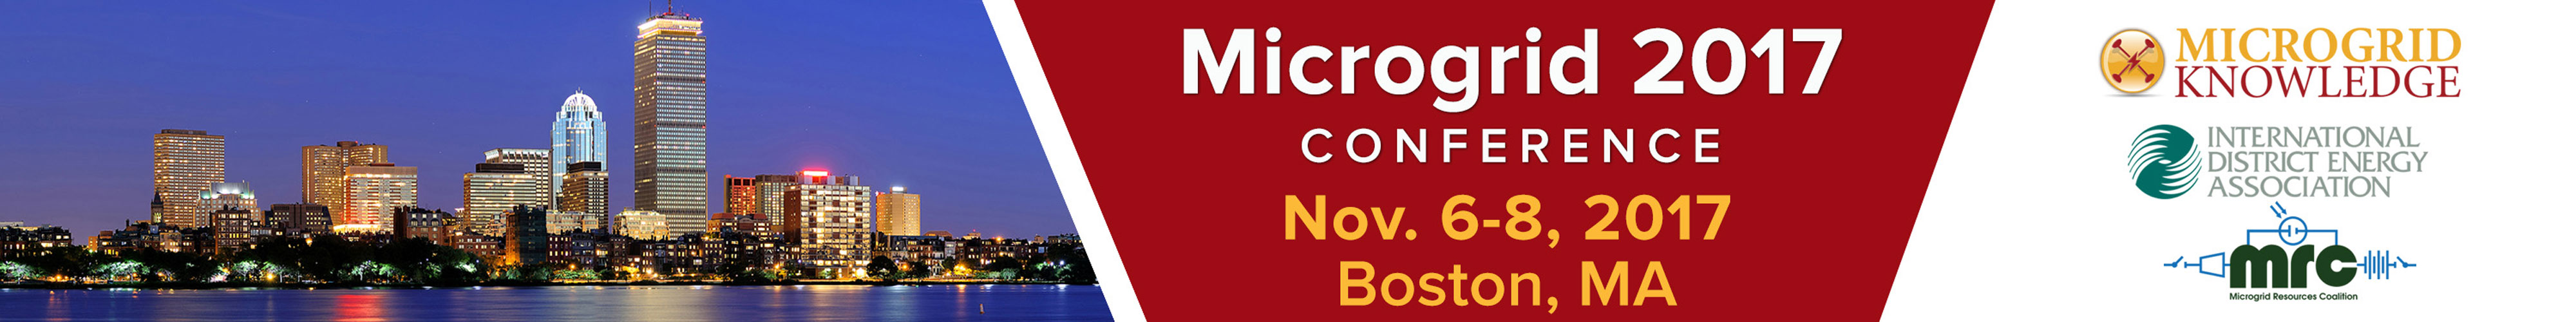 Microgrid 2017 Conference